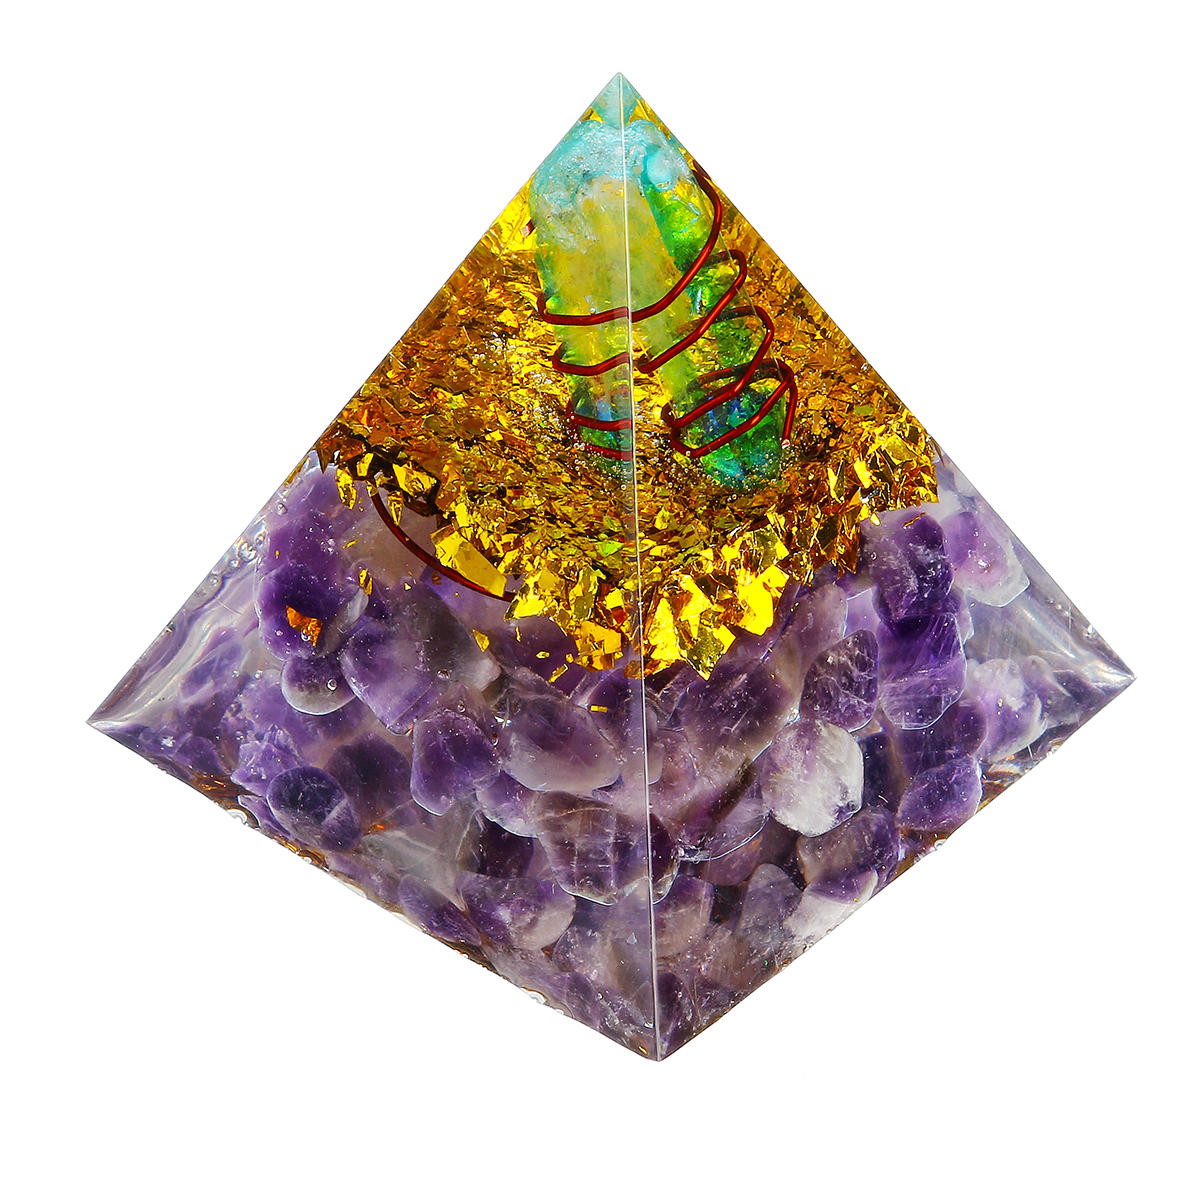 Himalayas Stone Decorations Orgone Pyramid Energy Generator Tower Home Reiki Healing Crystal